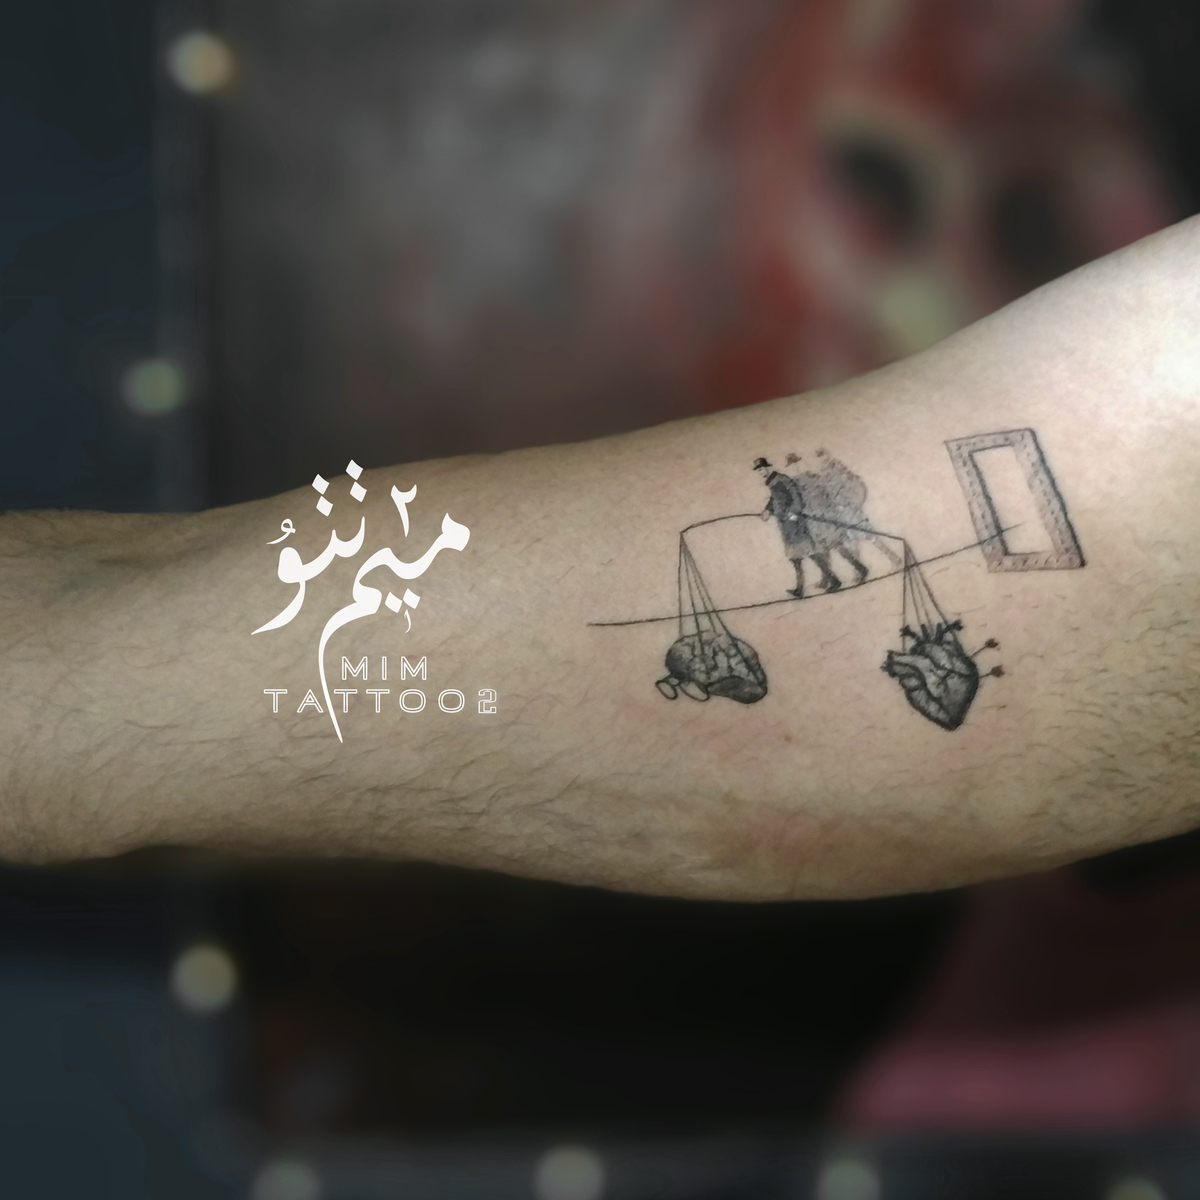 milad-tattoo-iran-arm-square-3